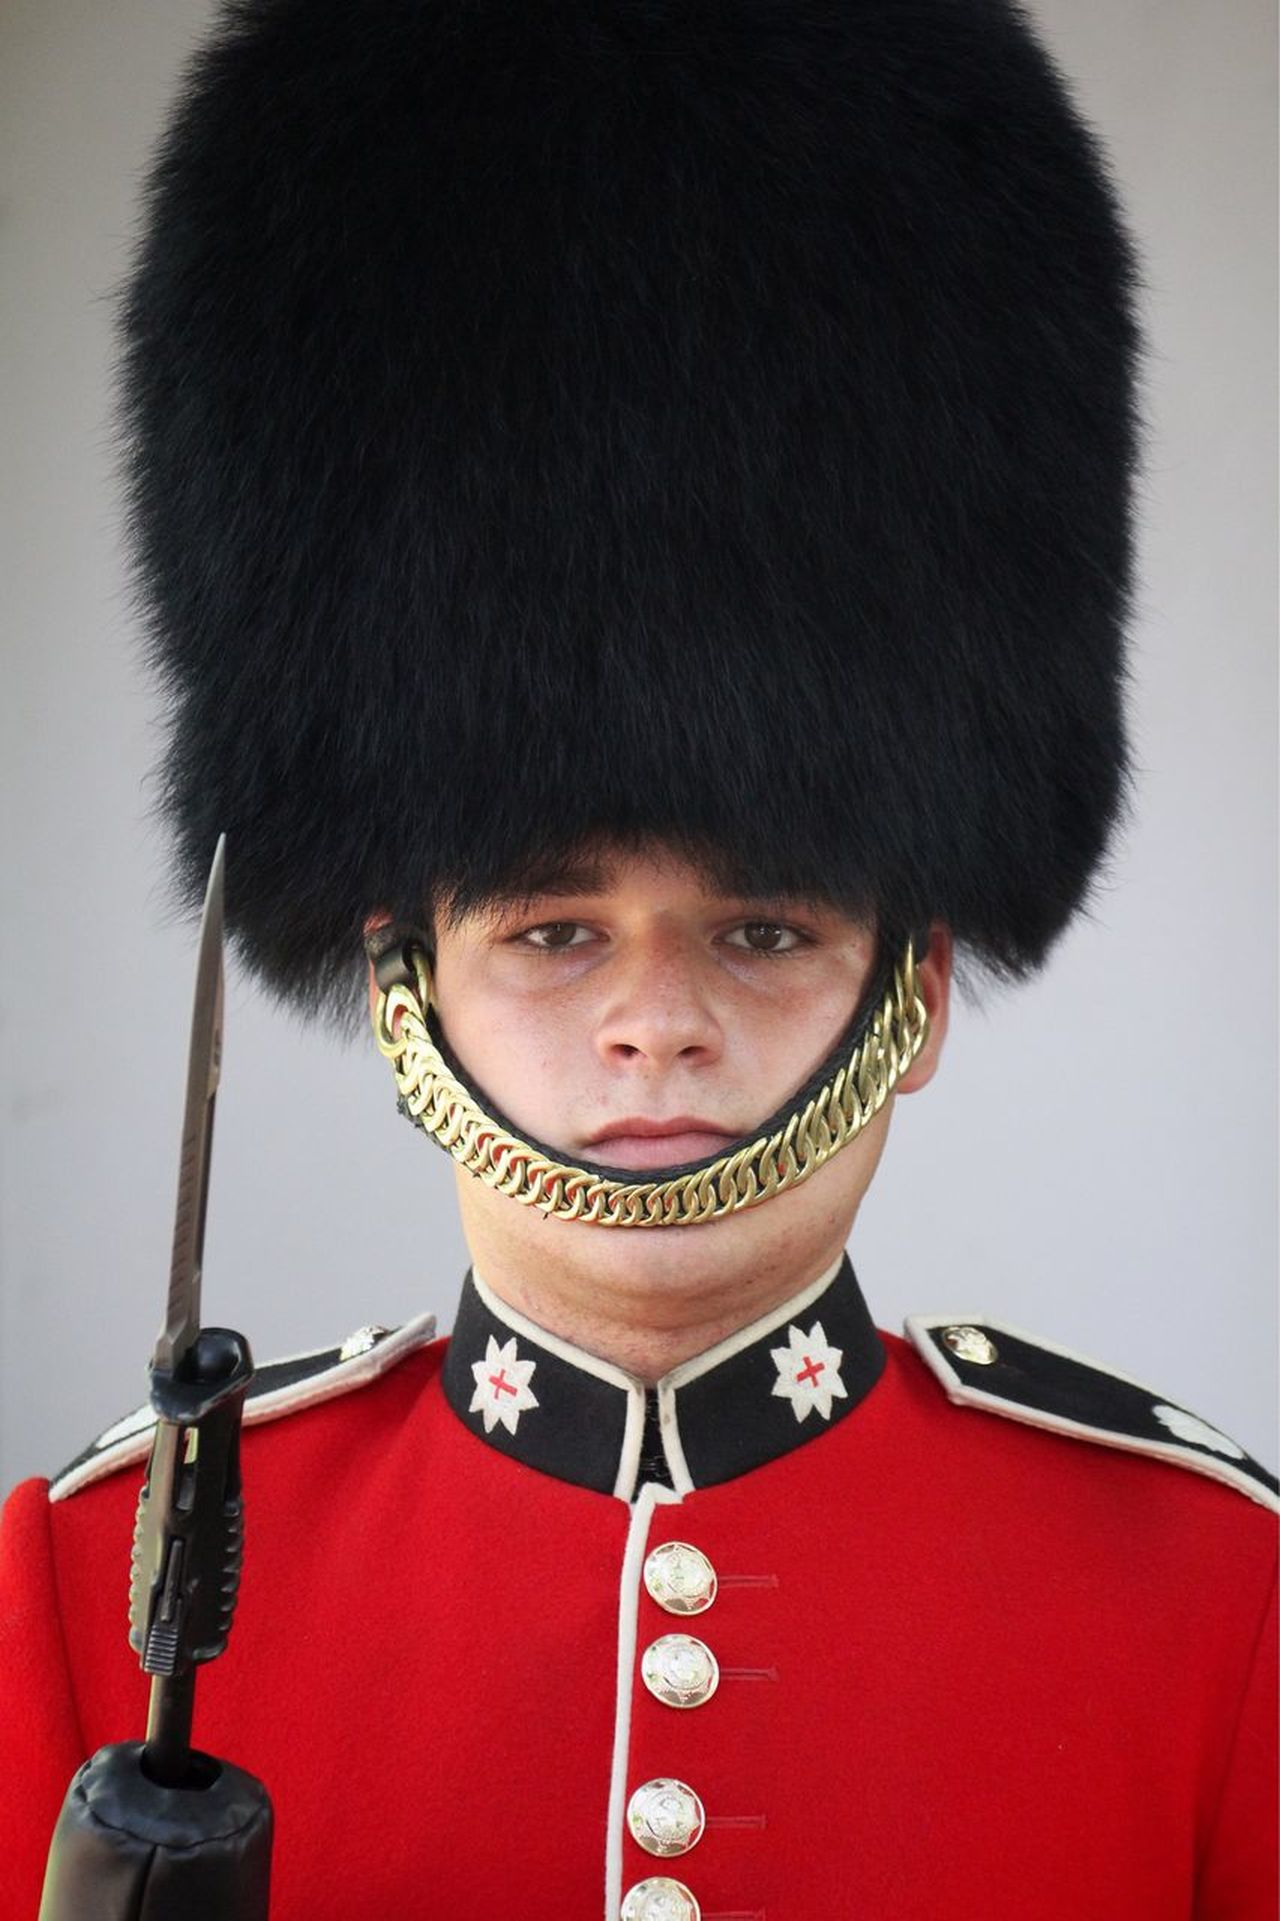 Man Guard Soldier Queen's Guard Uniform Sword Traditional Clothing One Person Portrait People Indoors  Period Costume Warrior - Person Cultures Kilt Headshot EyeEm Best Shots Check This Out Hat Weapon Gun Fur in Buckingham Palace London , United Kingdom